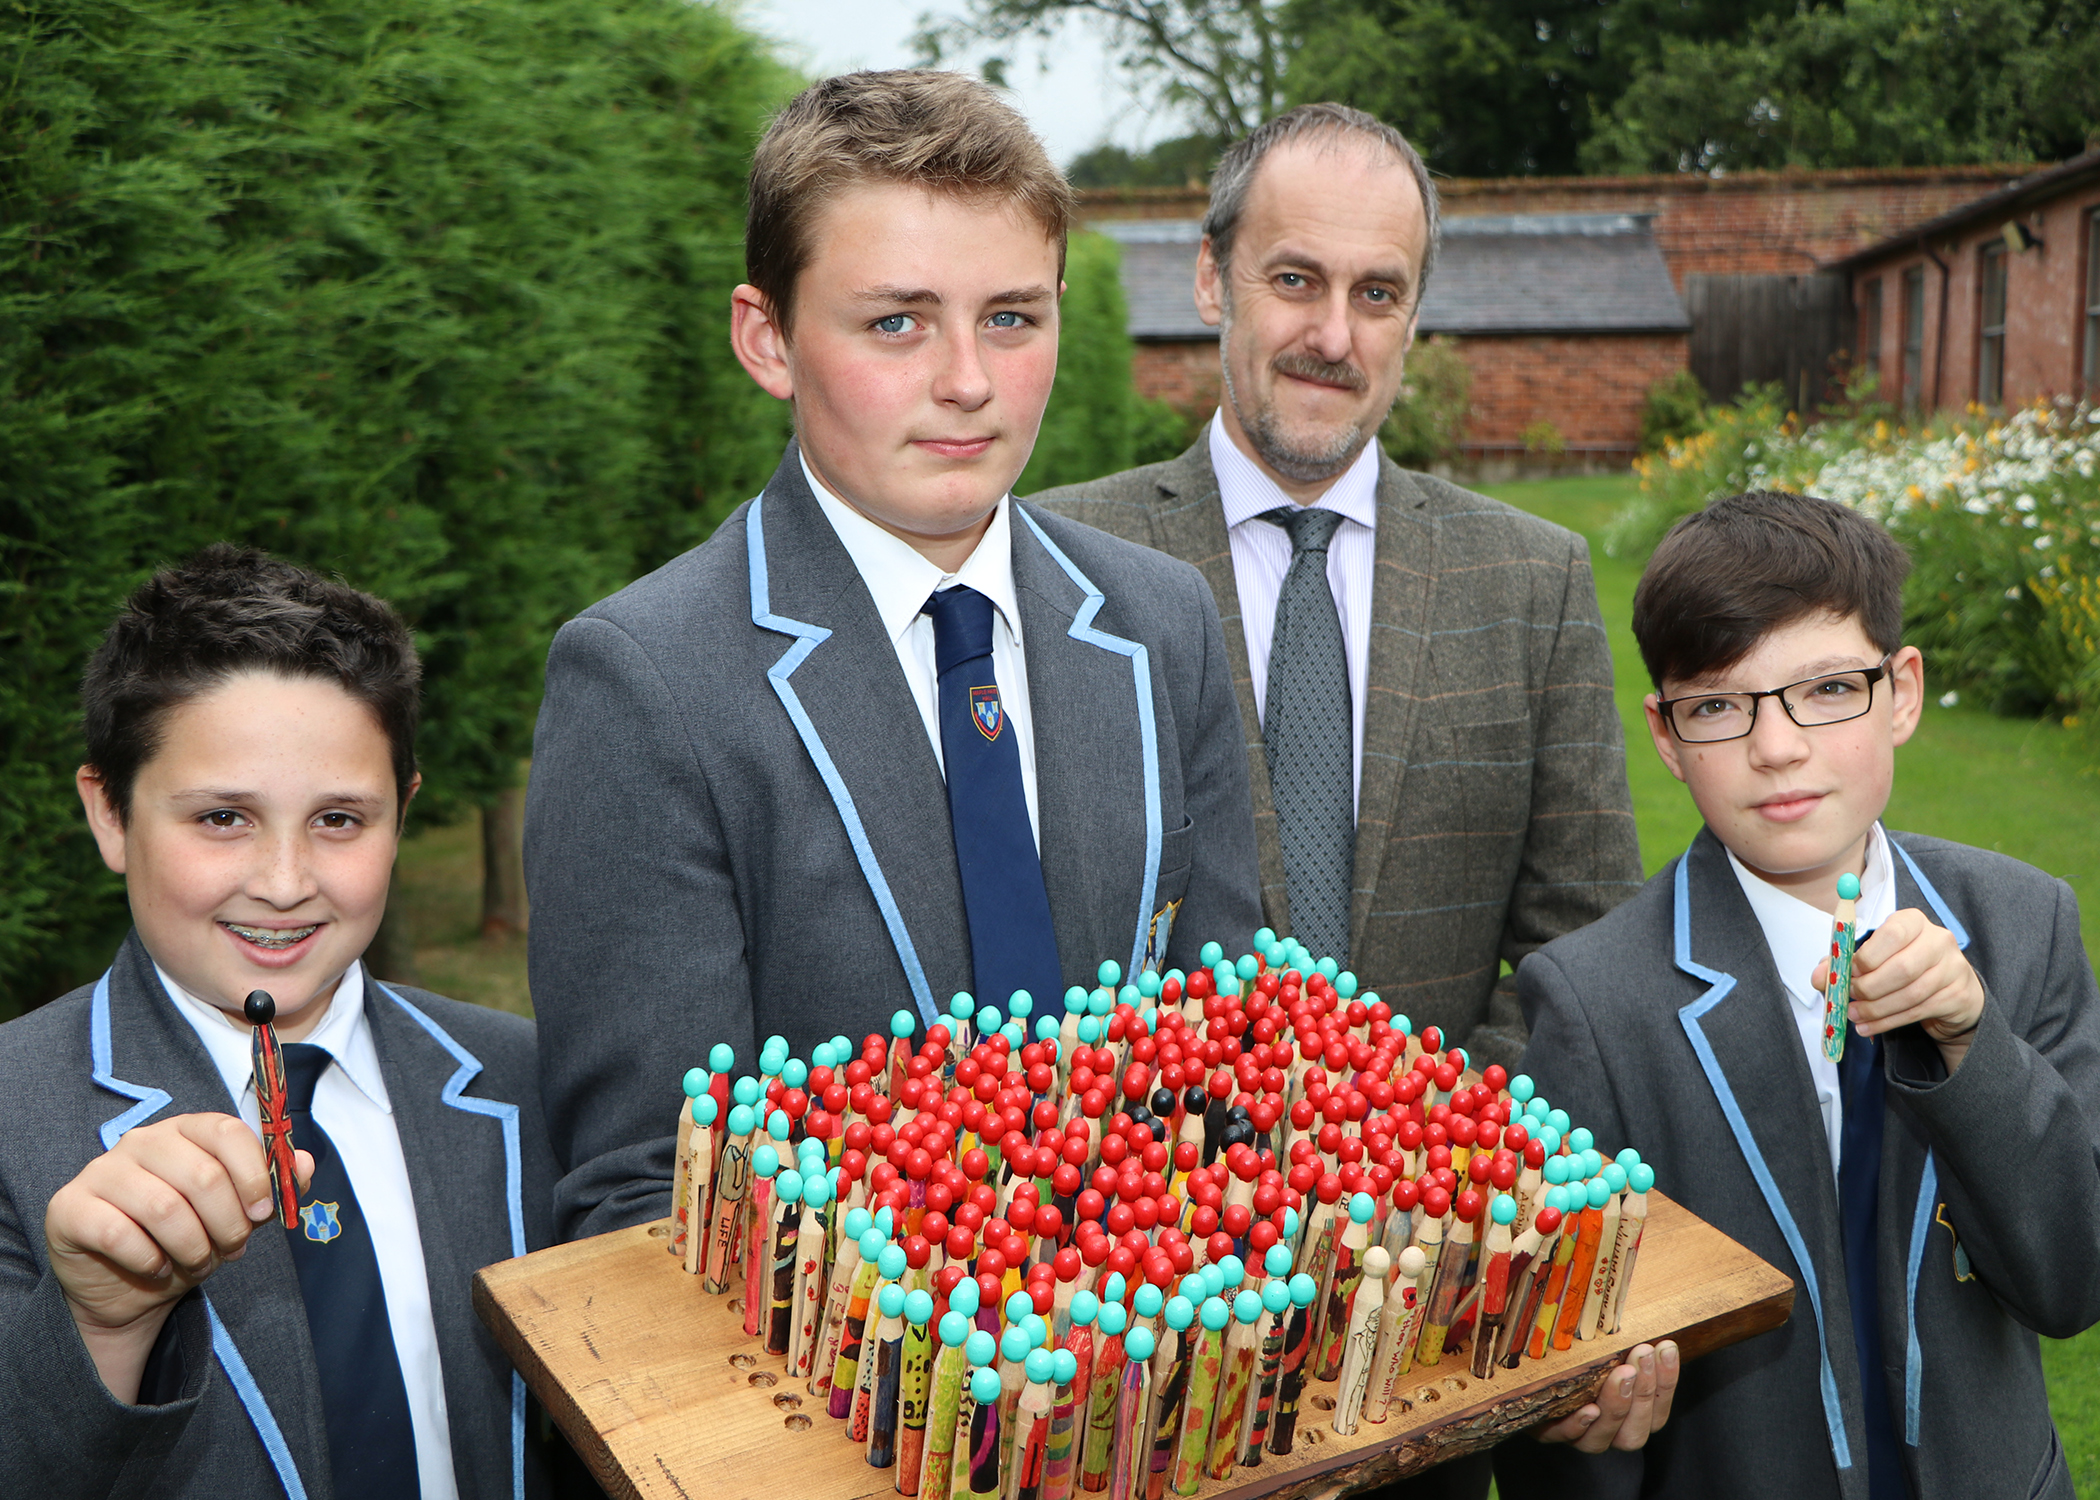 Maple Hayes pupils taking part in Shot at Dawn project - Left to Right: Tom Powers, Henry Tomlinson, Dr Daryl Brown, Alex Walker.